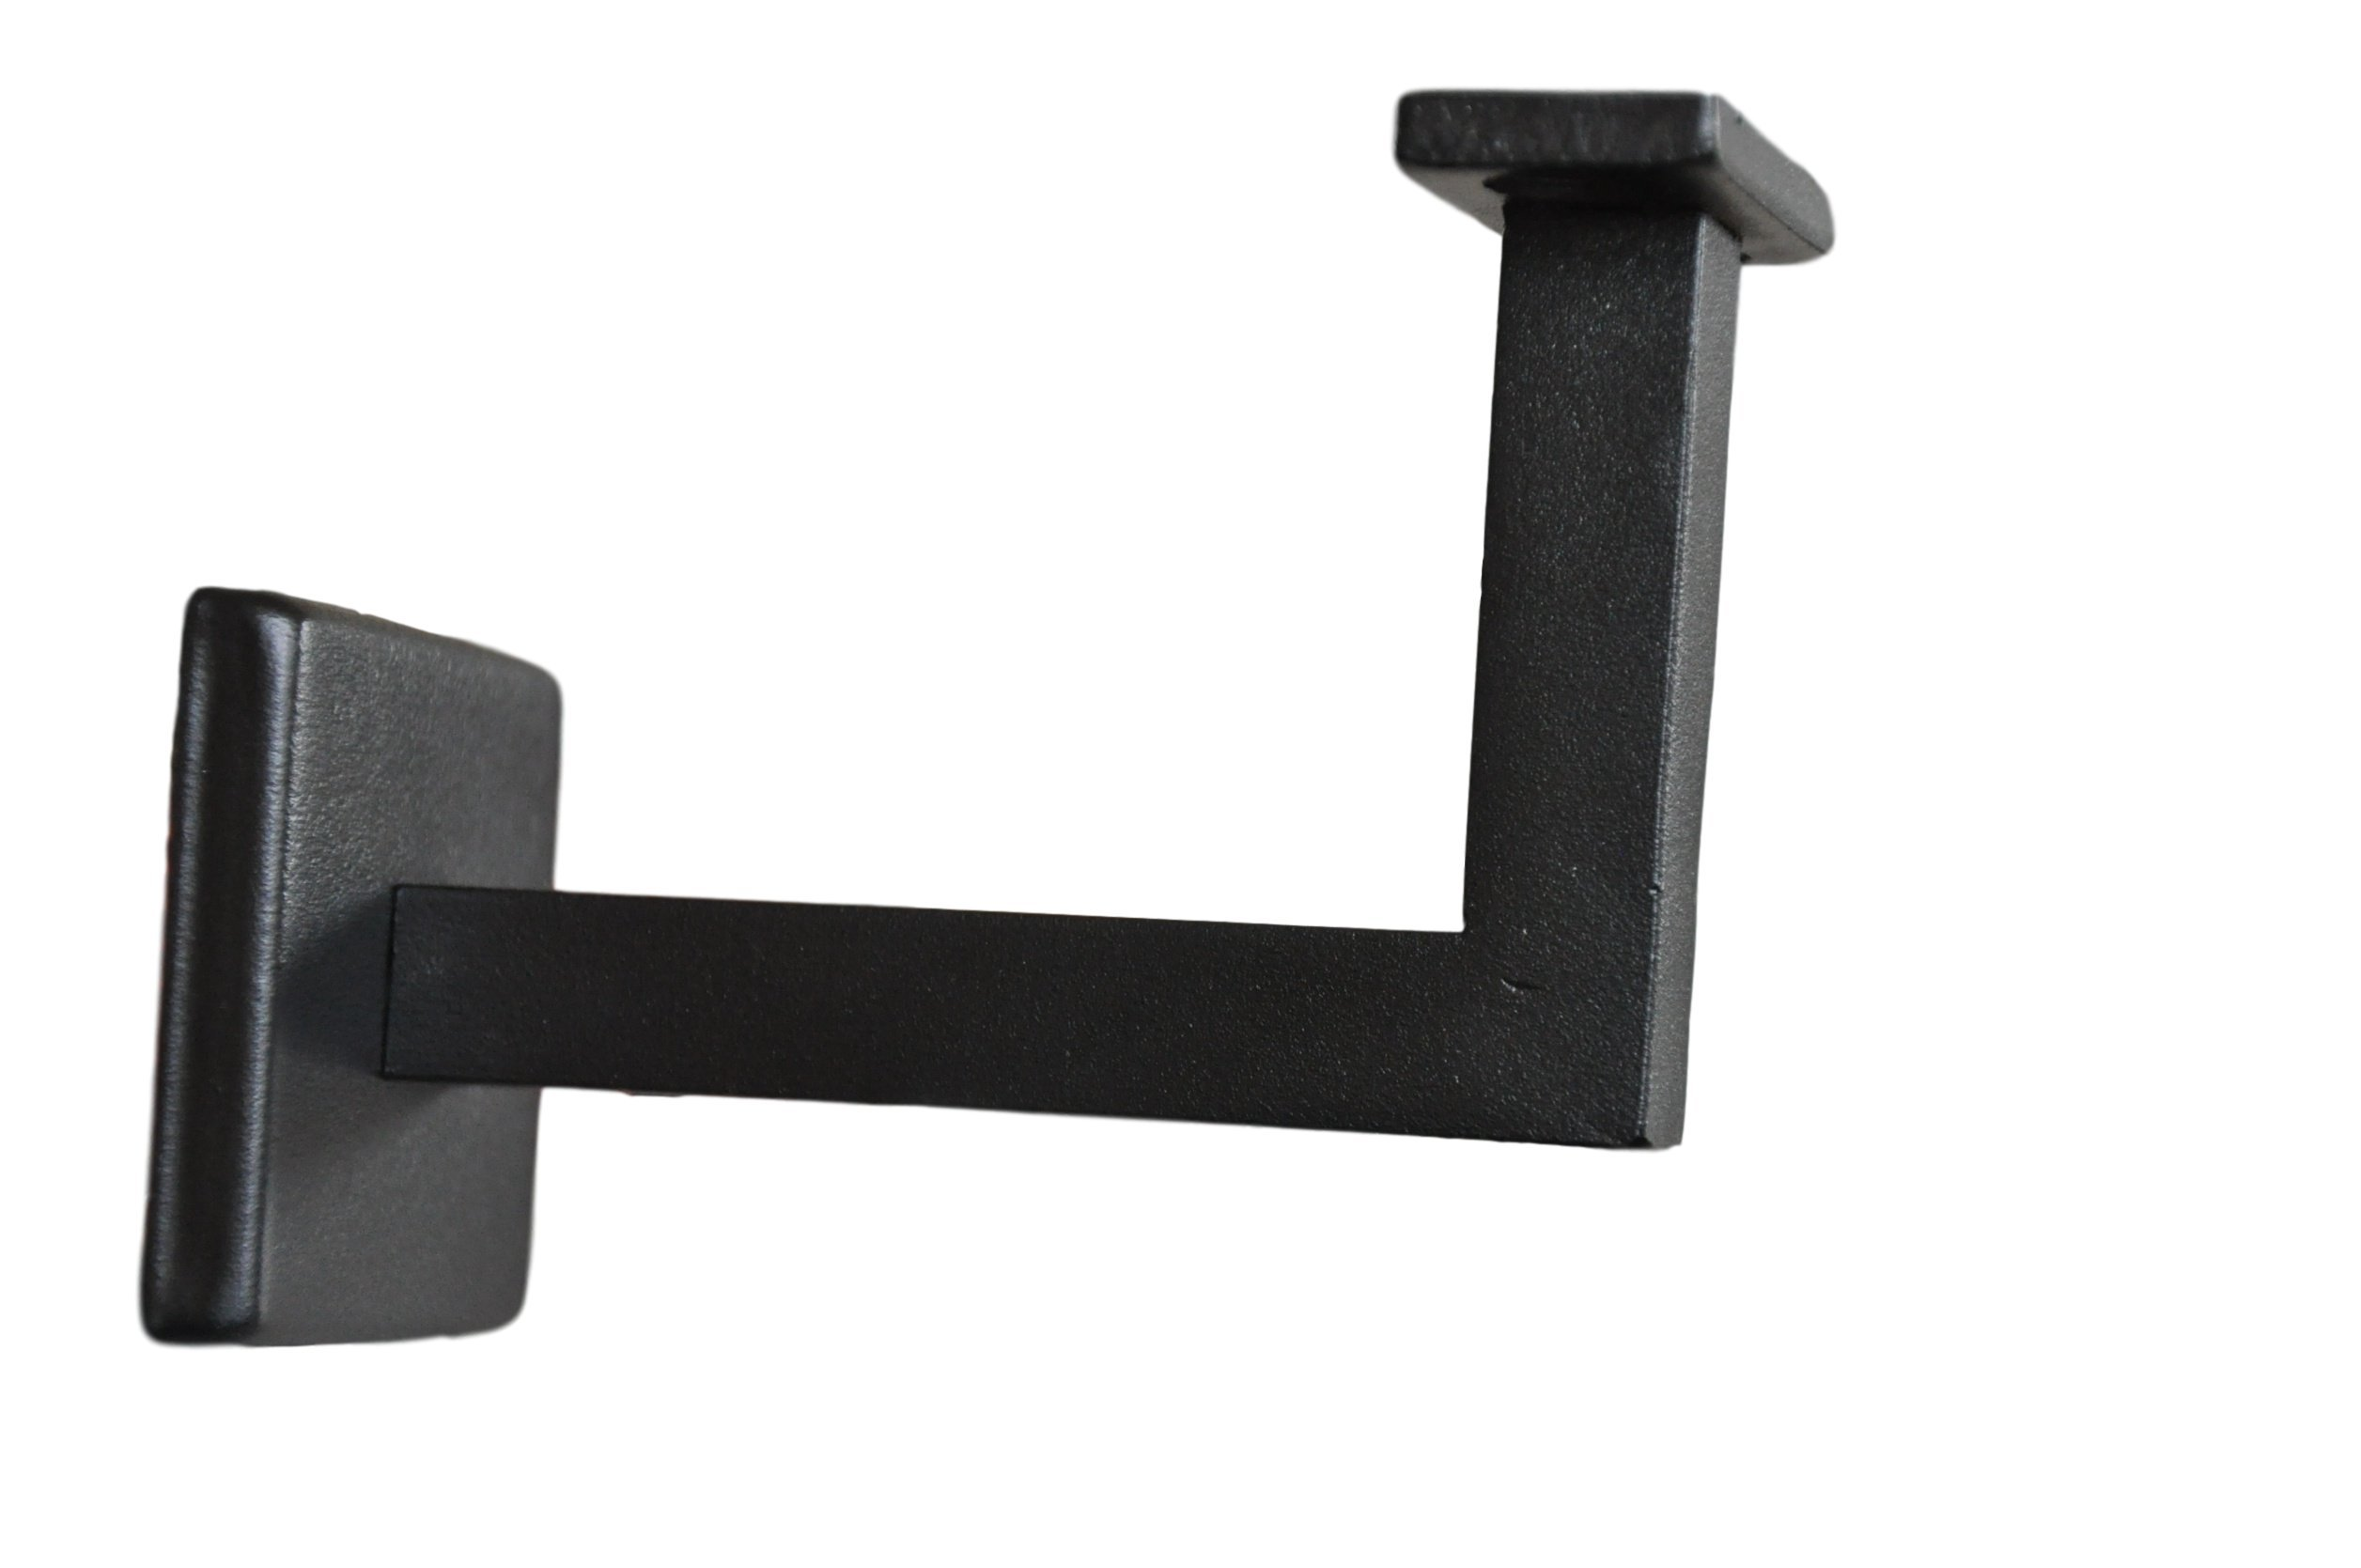 Rockyford Adjustable Wall Bracket (Textured Black) by Rockyford